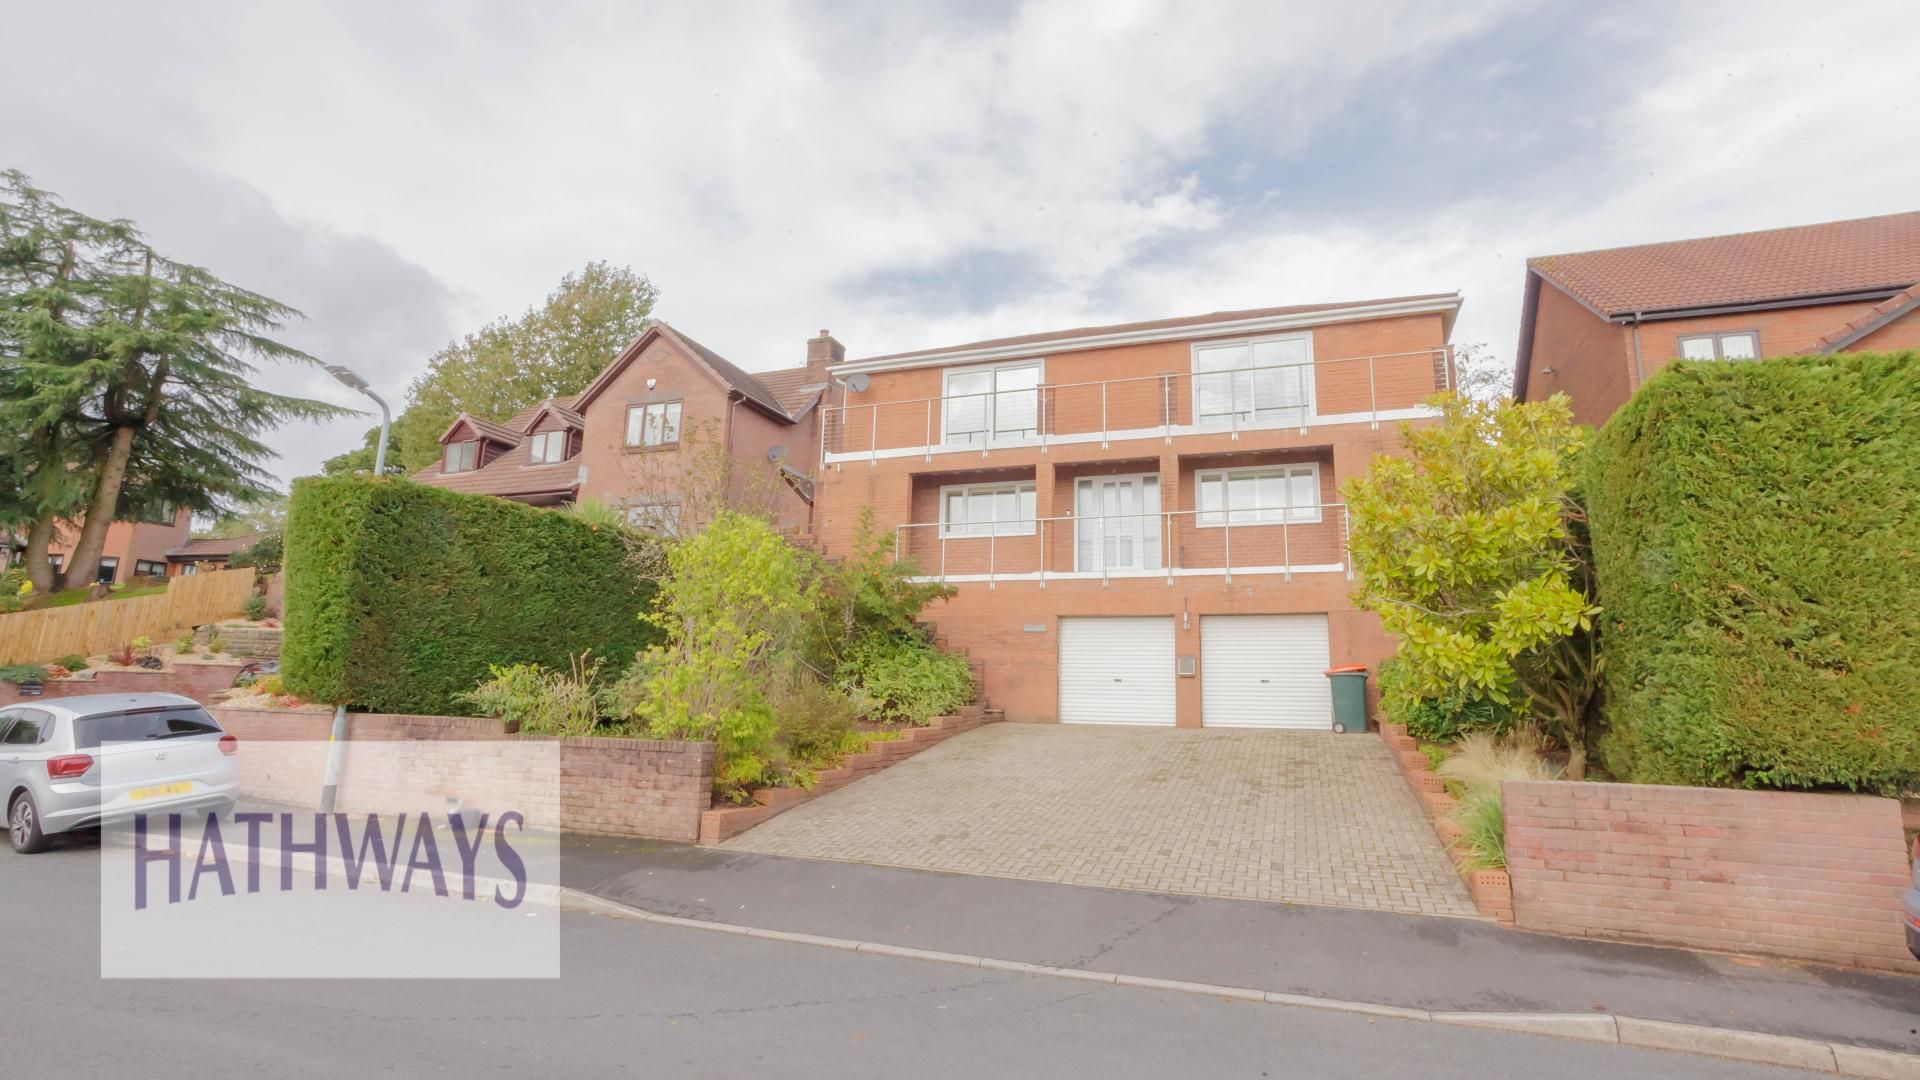 4 bed house for sale in Parkwood Close, NP18